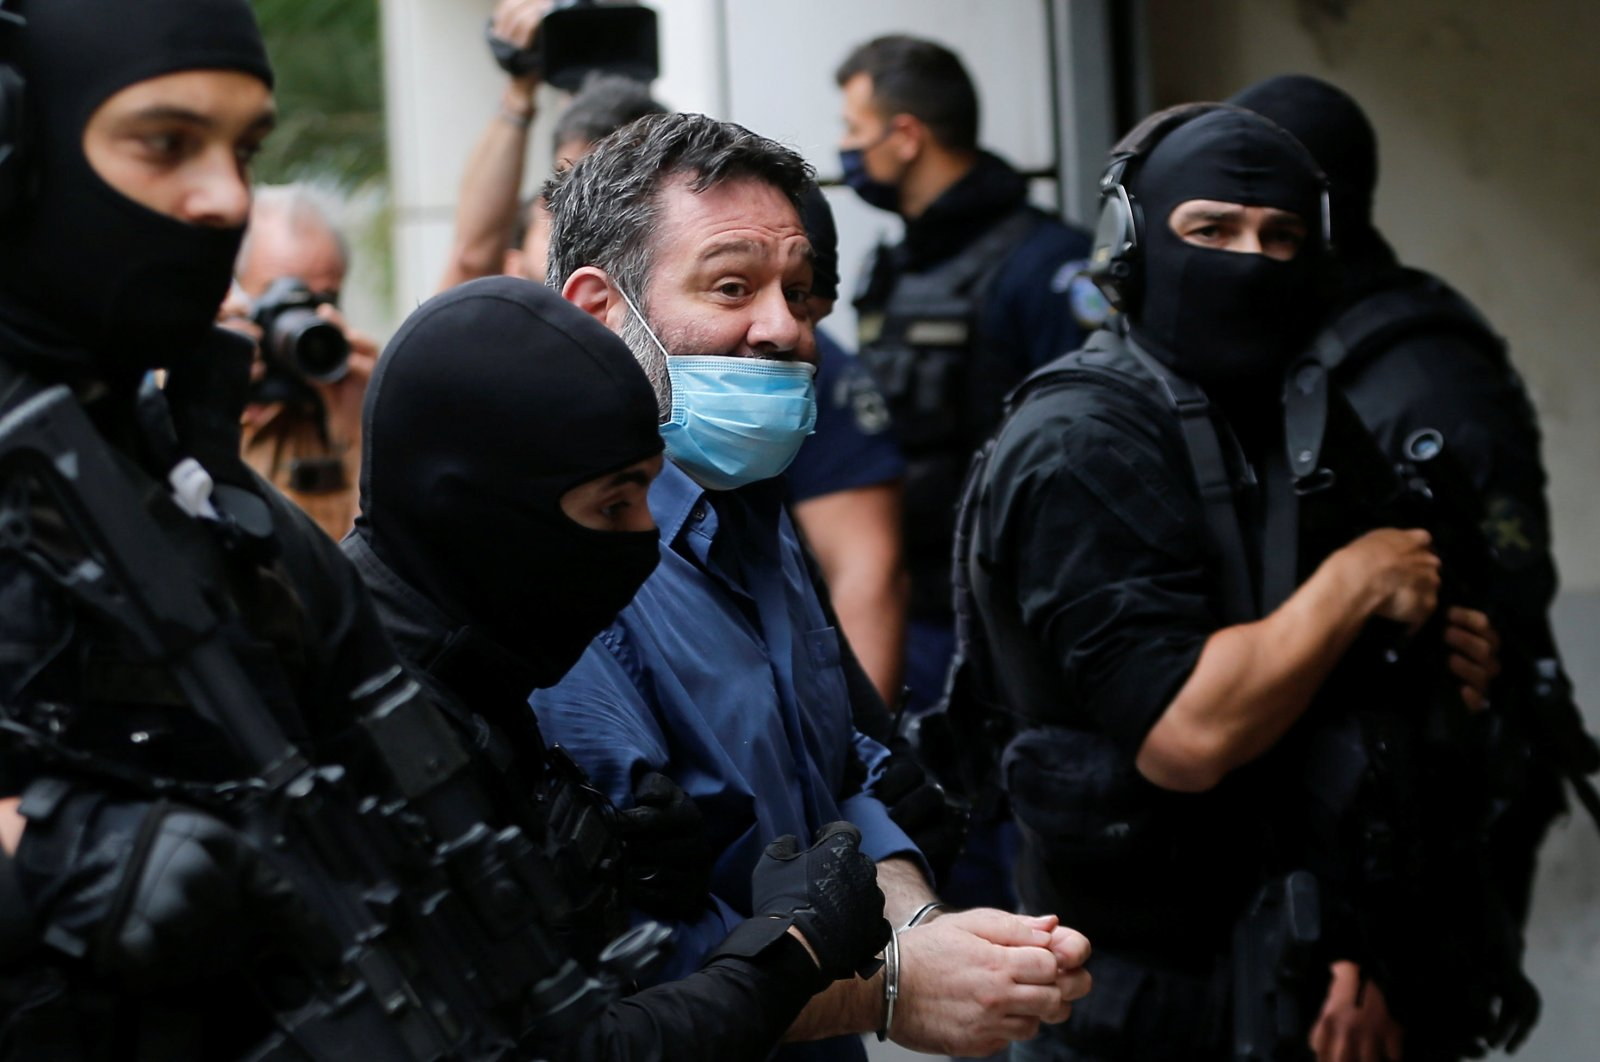 Ioannis Lagos (C), a Greek member of the European Parliament and former member of the far-right Golden Dawn party, is escorted by anti-terrorism police officers to the prosecutor's office in Athens, Greece, May 15, 2021. (REUTERS)